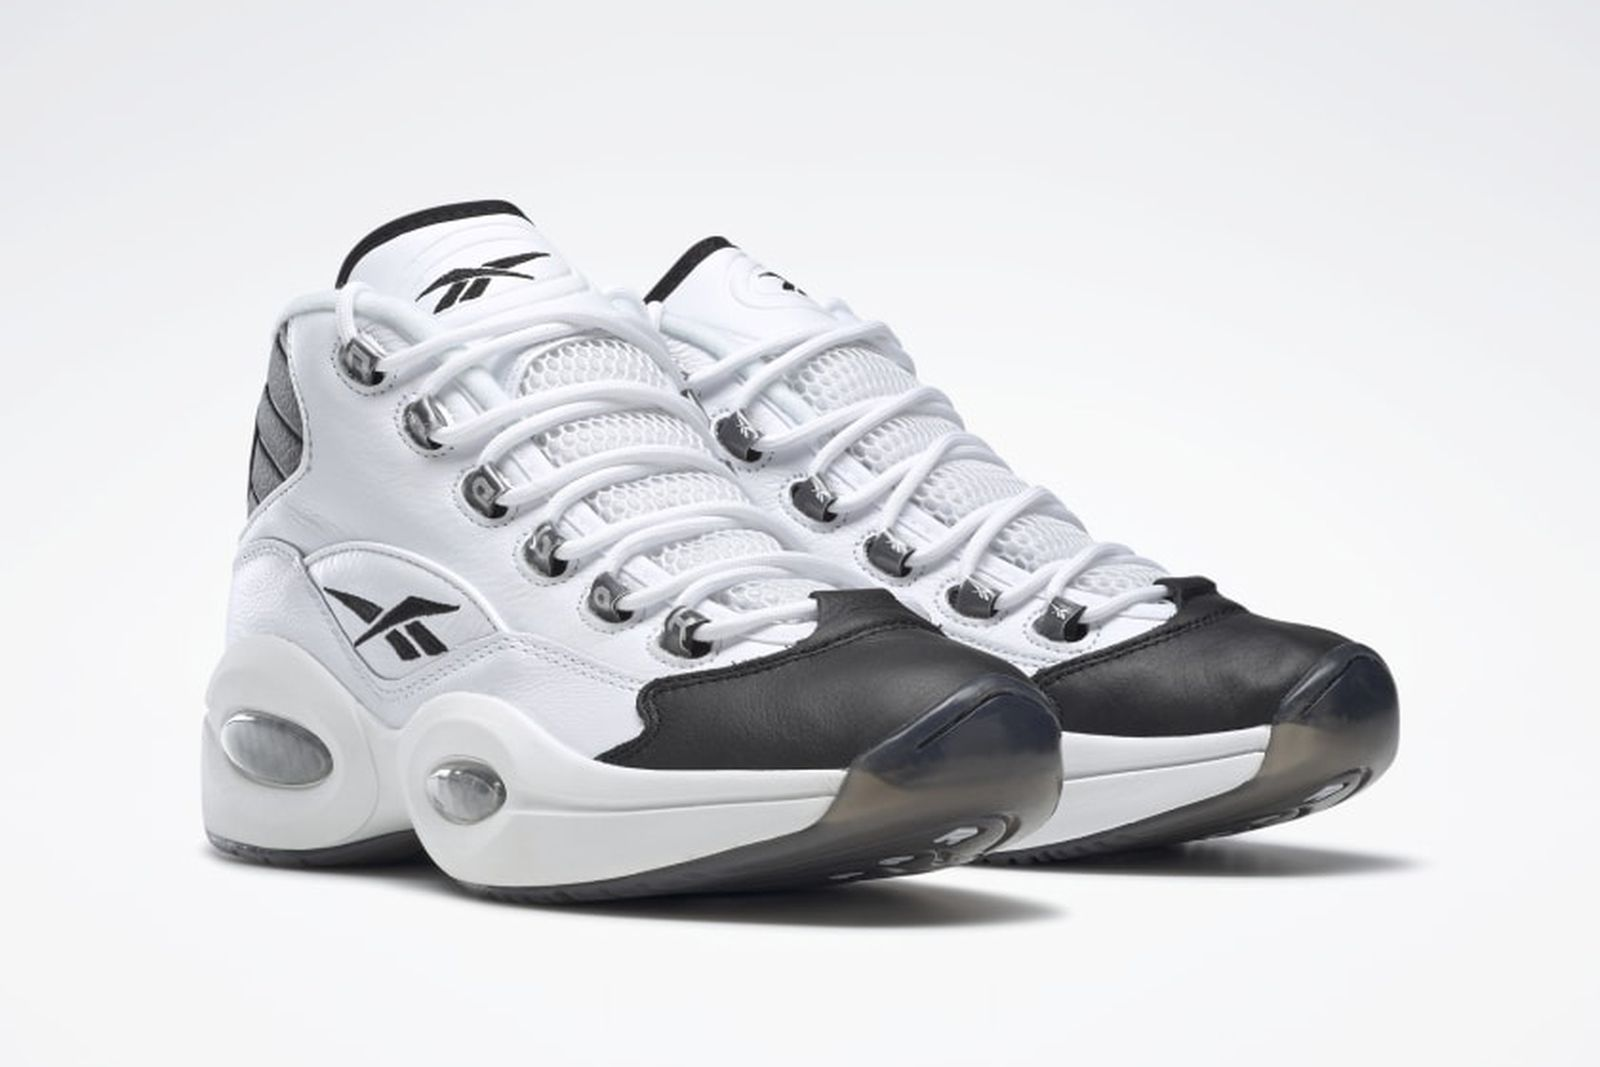 daily-sneaker-news-03-01-2021-2-02